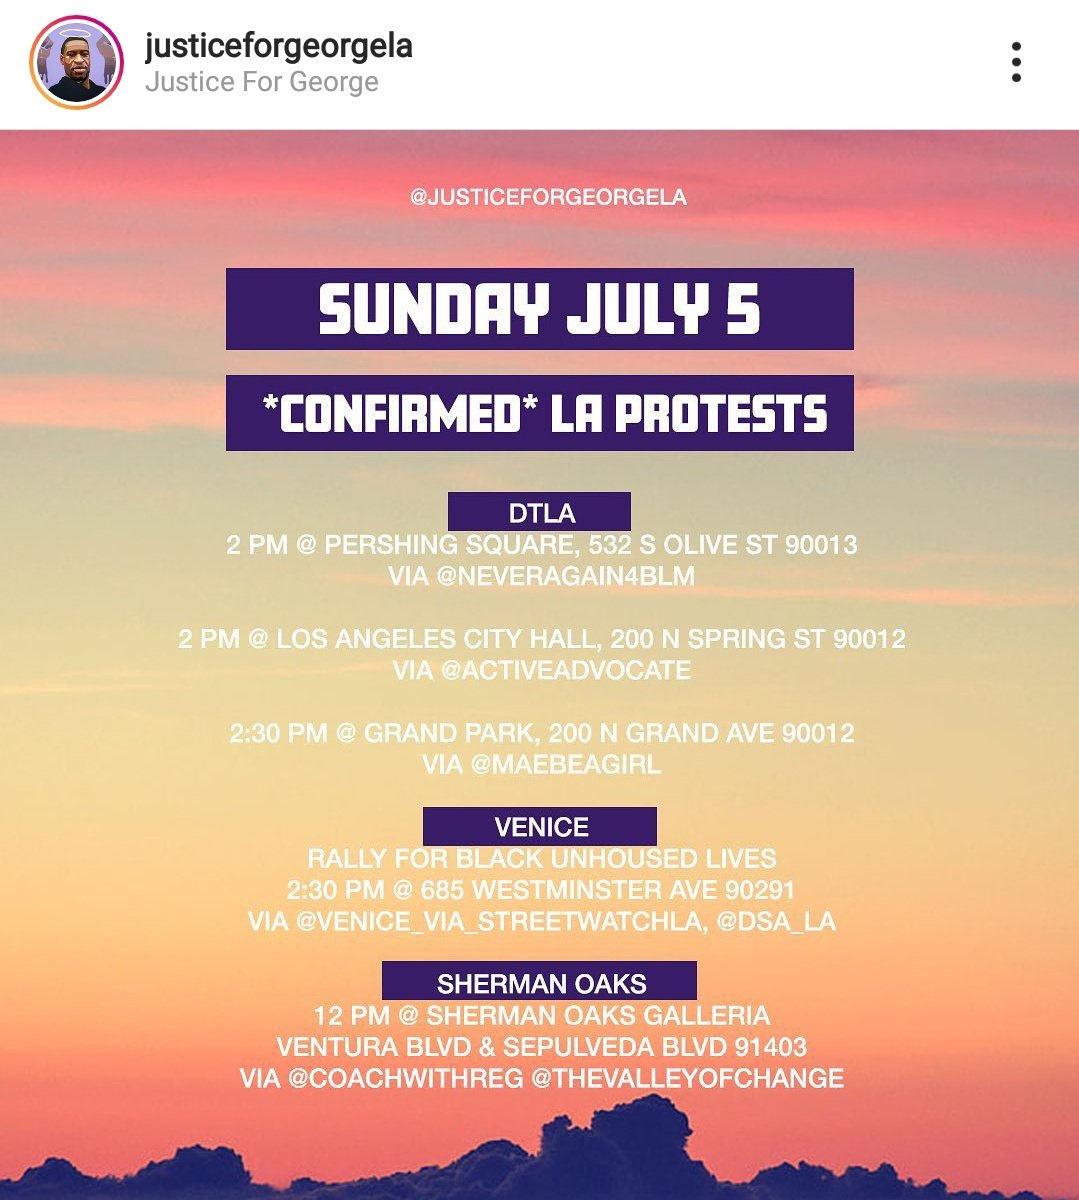 Los Angeles direct actions for Sunday, July 5 Locations: Downtown LA, Venice, Sherman Oaks  https://t.co/2ZOcWdA9HT  #LosAngelesProtest #socalprotest https://t.co/93eJfB0vYT